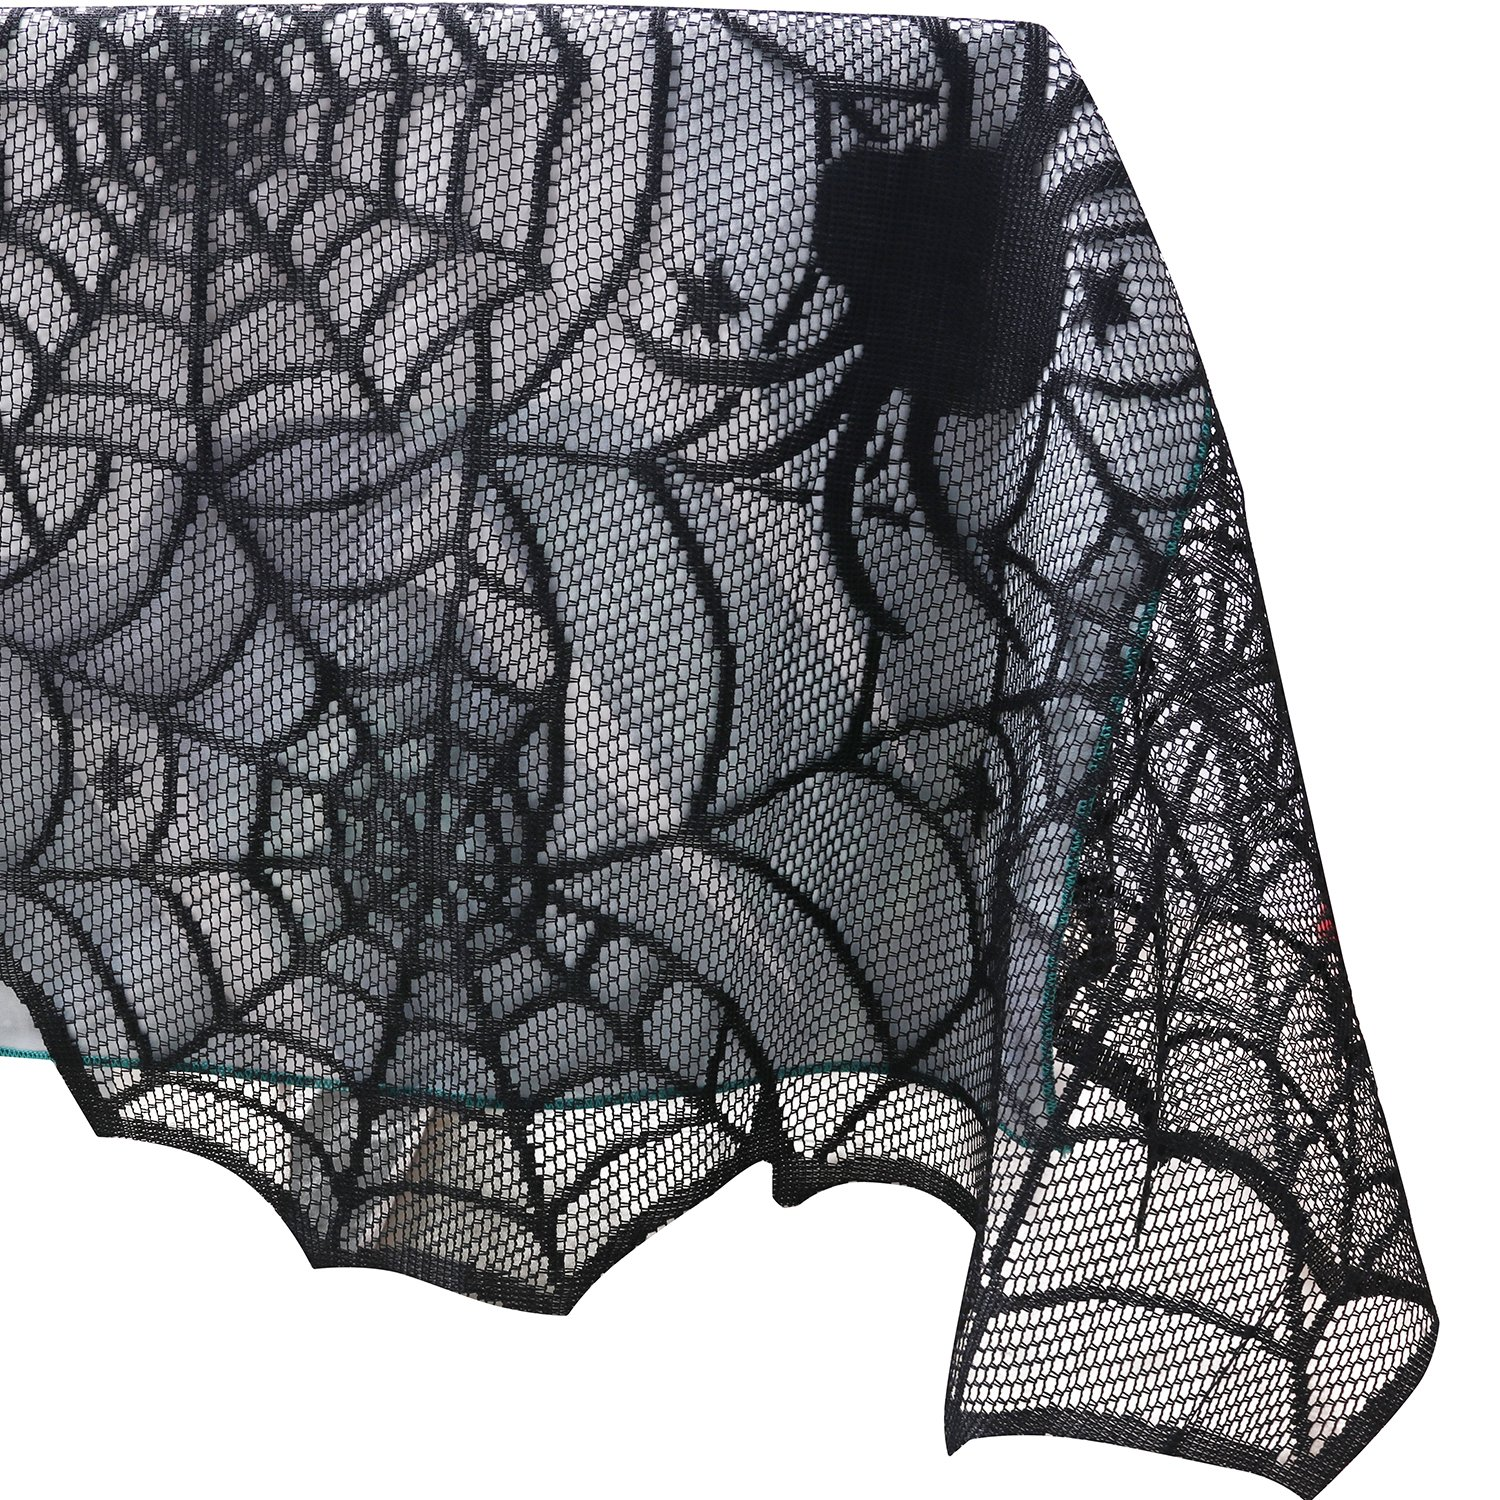 54x72 inch Rectangular Polyester Lace Tablecloth, Black Spider Web - Perfect for Halloween, Dinner Parties and Scary Movie Nights